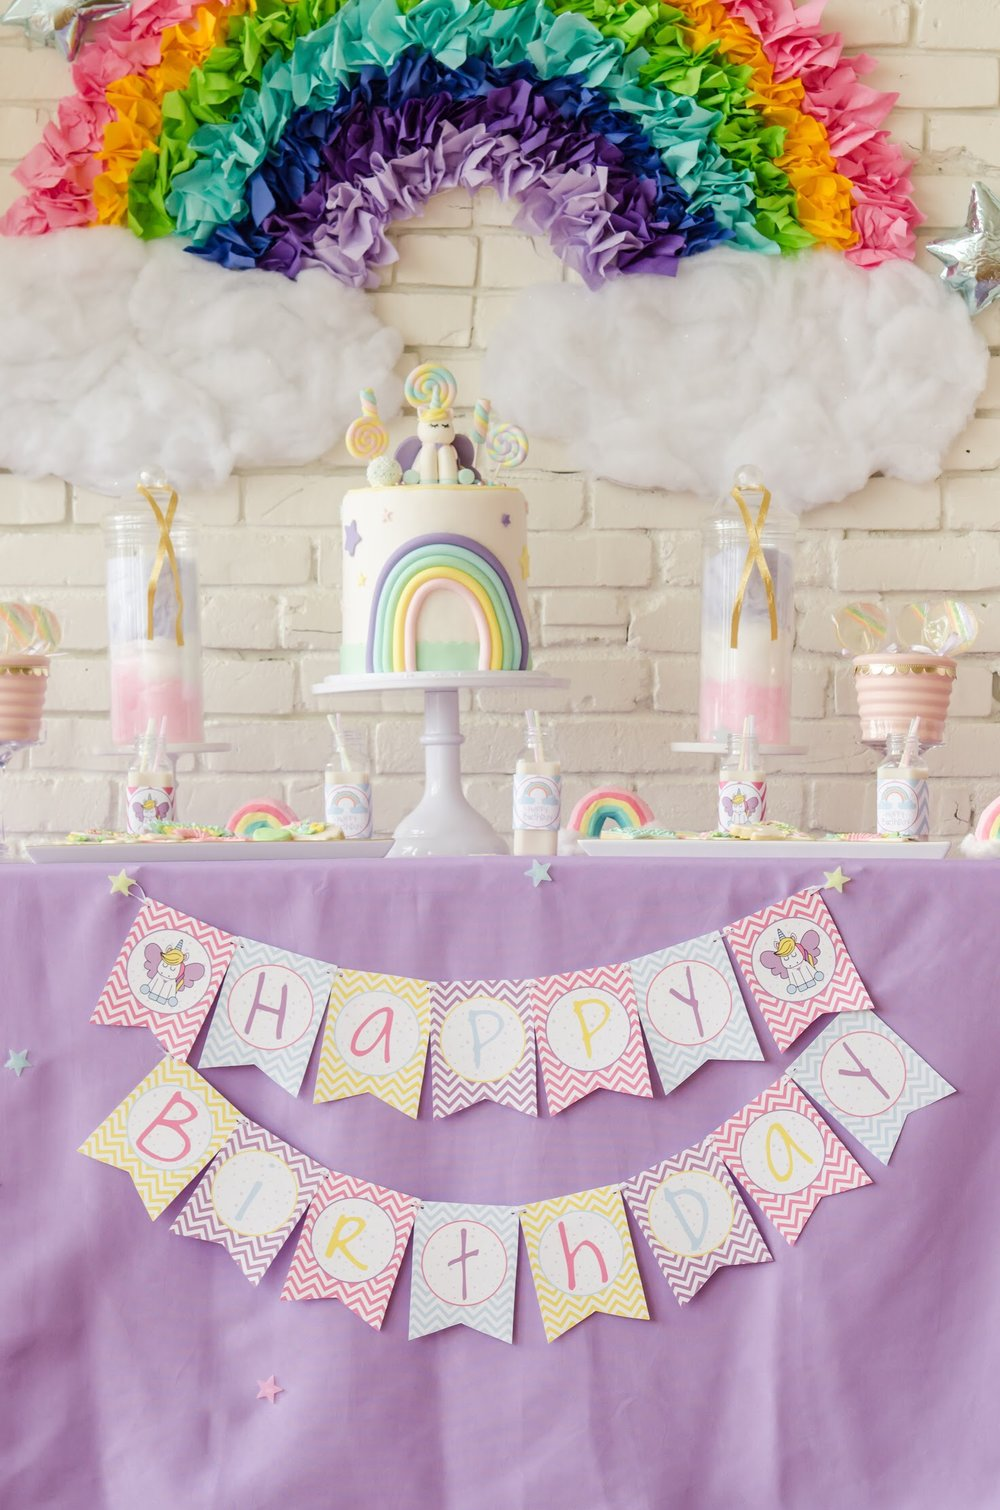 Create this Pastel Rainbow colored Unicorn Birthday Party and download this Free Happy Birthday Banner. Come see all the Unicorn Birthday Party Ideas at Mint Event Design www.minteventdesign.com #unicornparty #birthdayparty #birthdaypartyideas #pastelrainbow #freeprintables #partybanner